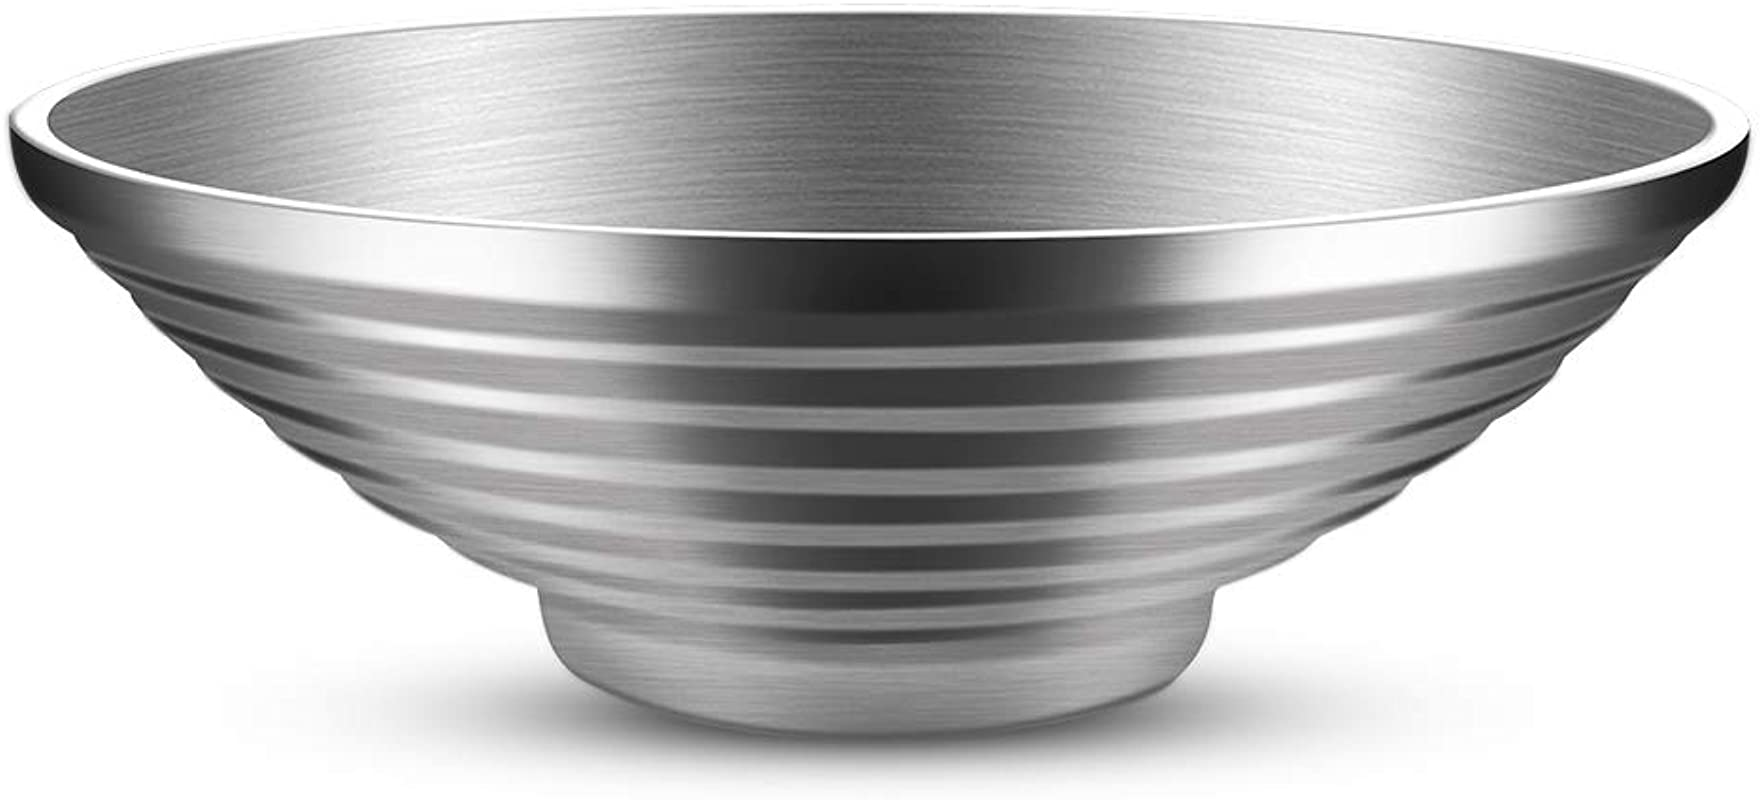 Salad Bowl Double Wall 10 Inch 47 OZ Stainless Steel Multipurpose Serving Bowl For Soup Cooked Food Fruit Noodle Cereal Salad Bowl